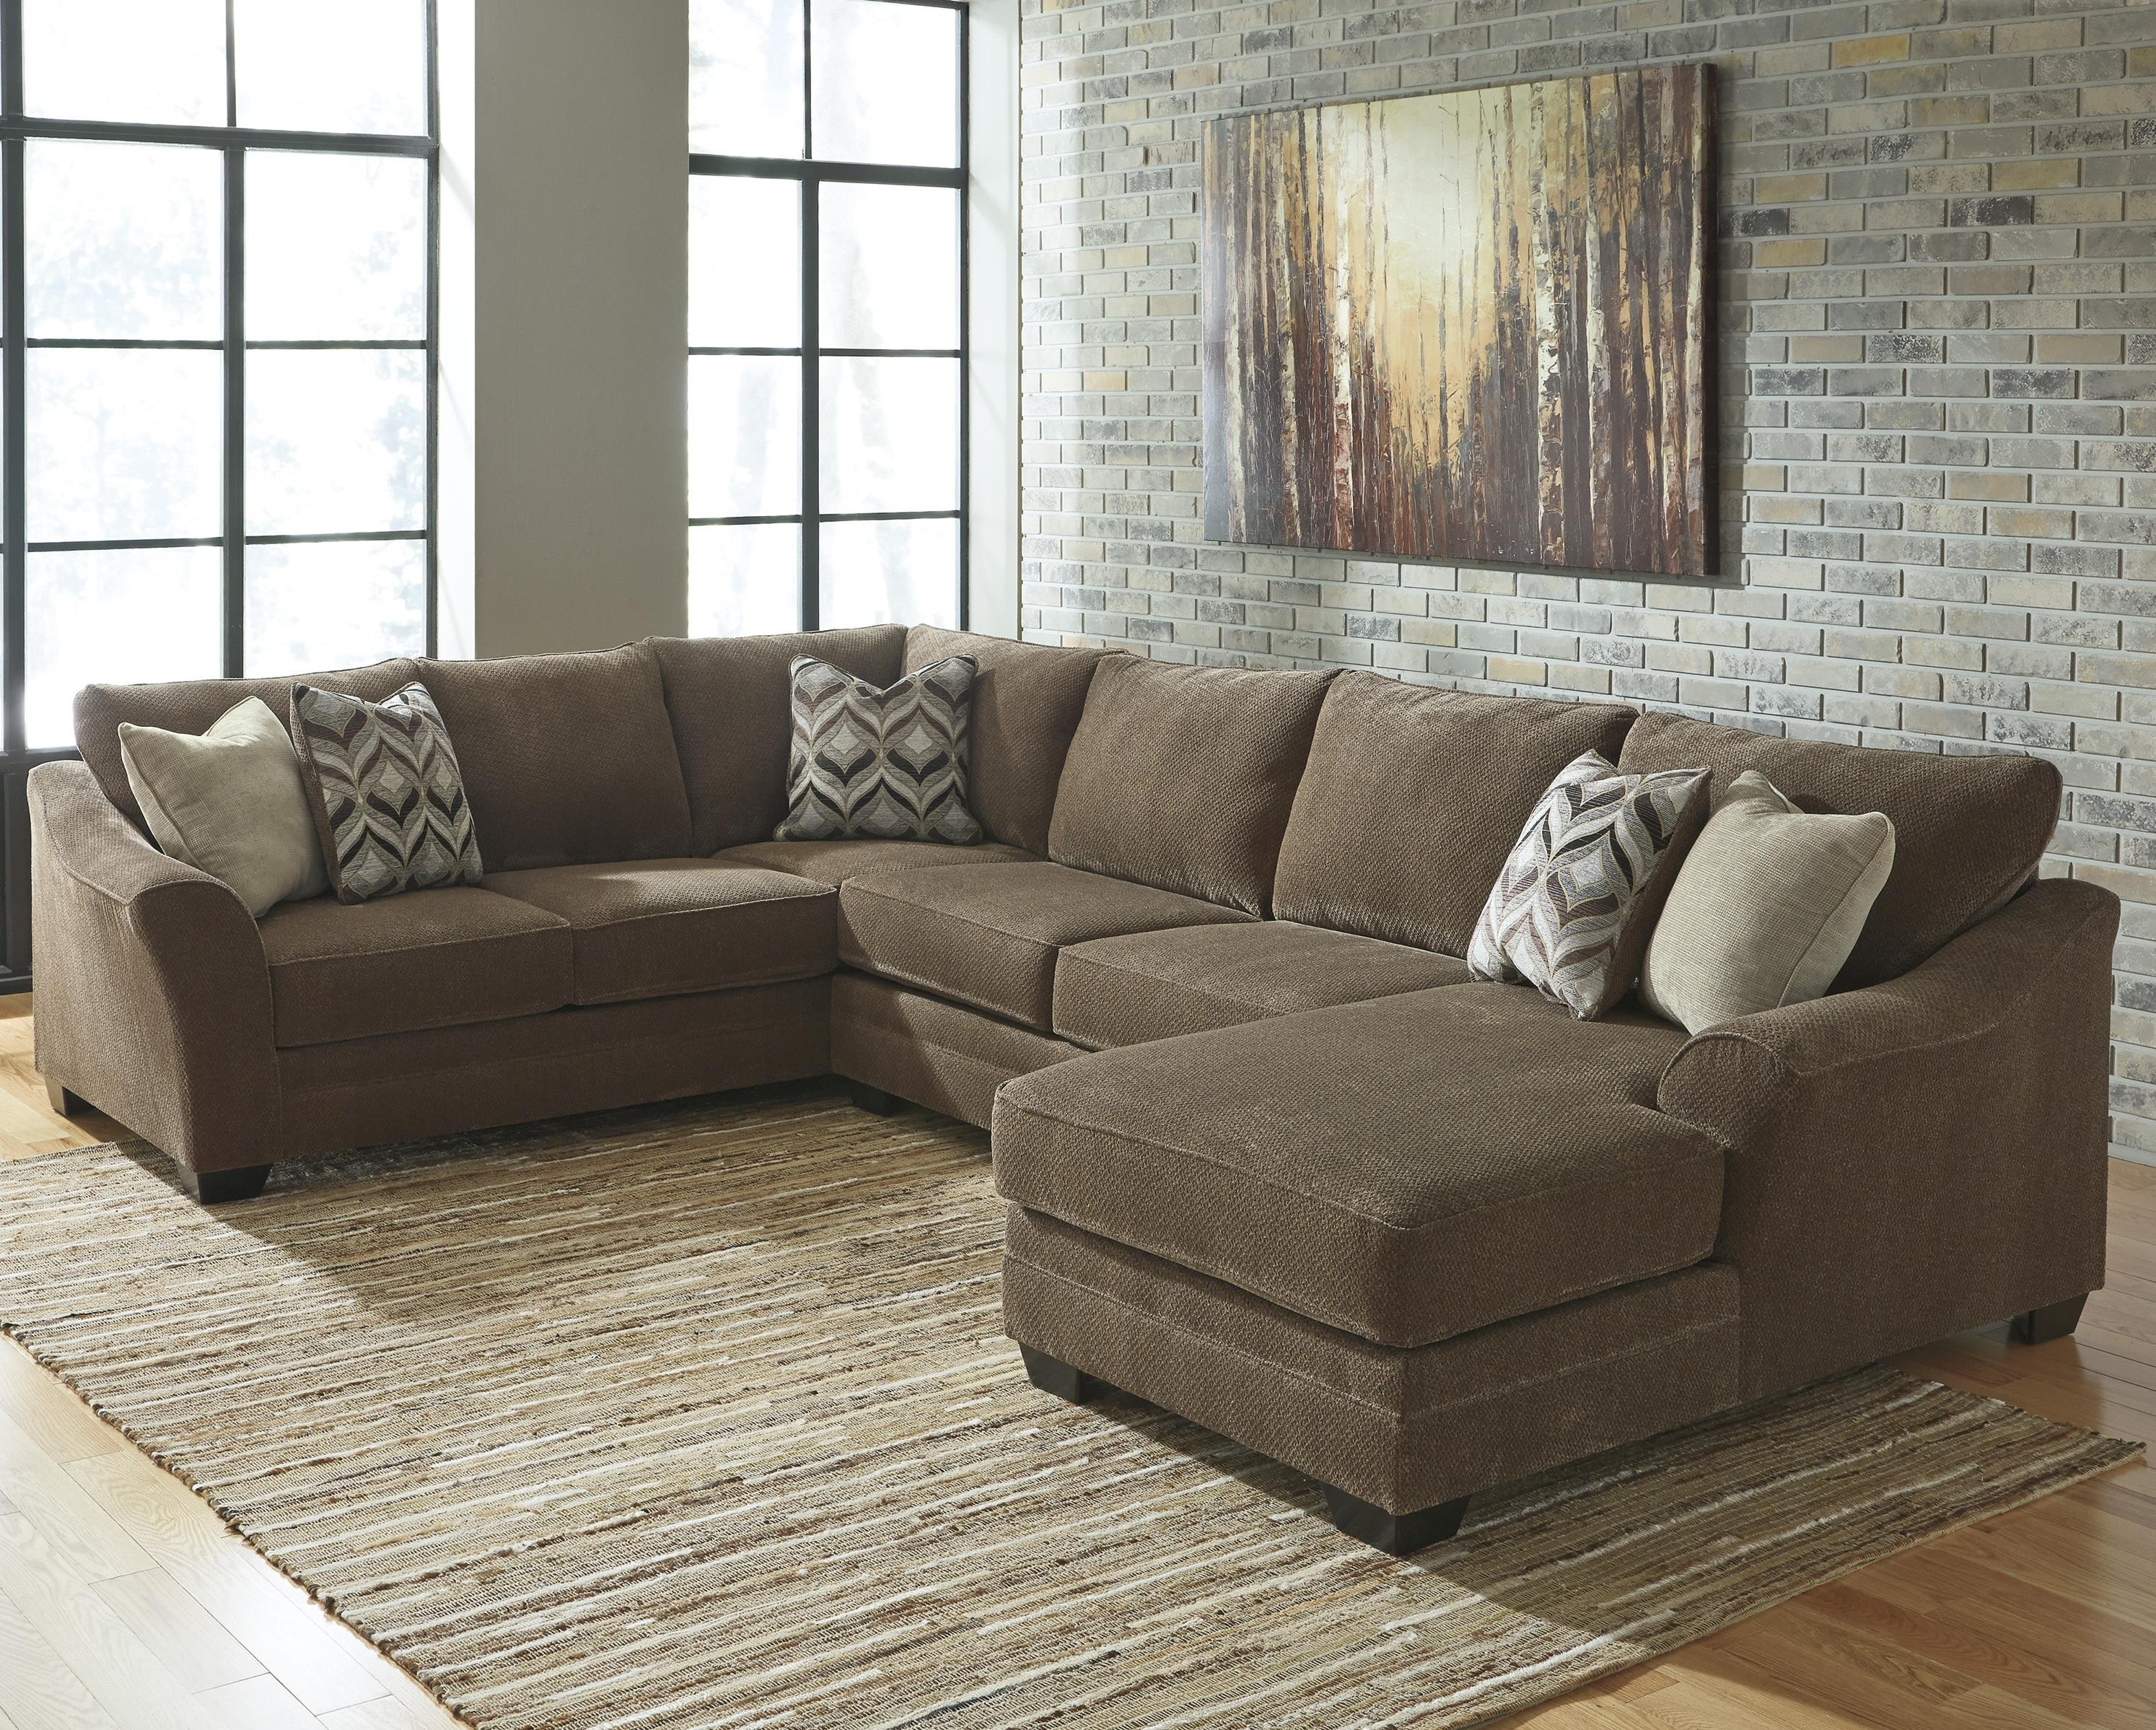 Elegant 3 Piece Microfiber Sectional Sofa – Buildsimplehome Within Sierra Down 3 Piece Sectionals With Laf Chaise (View 13 of 30)